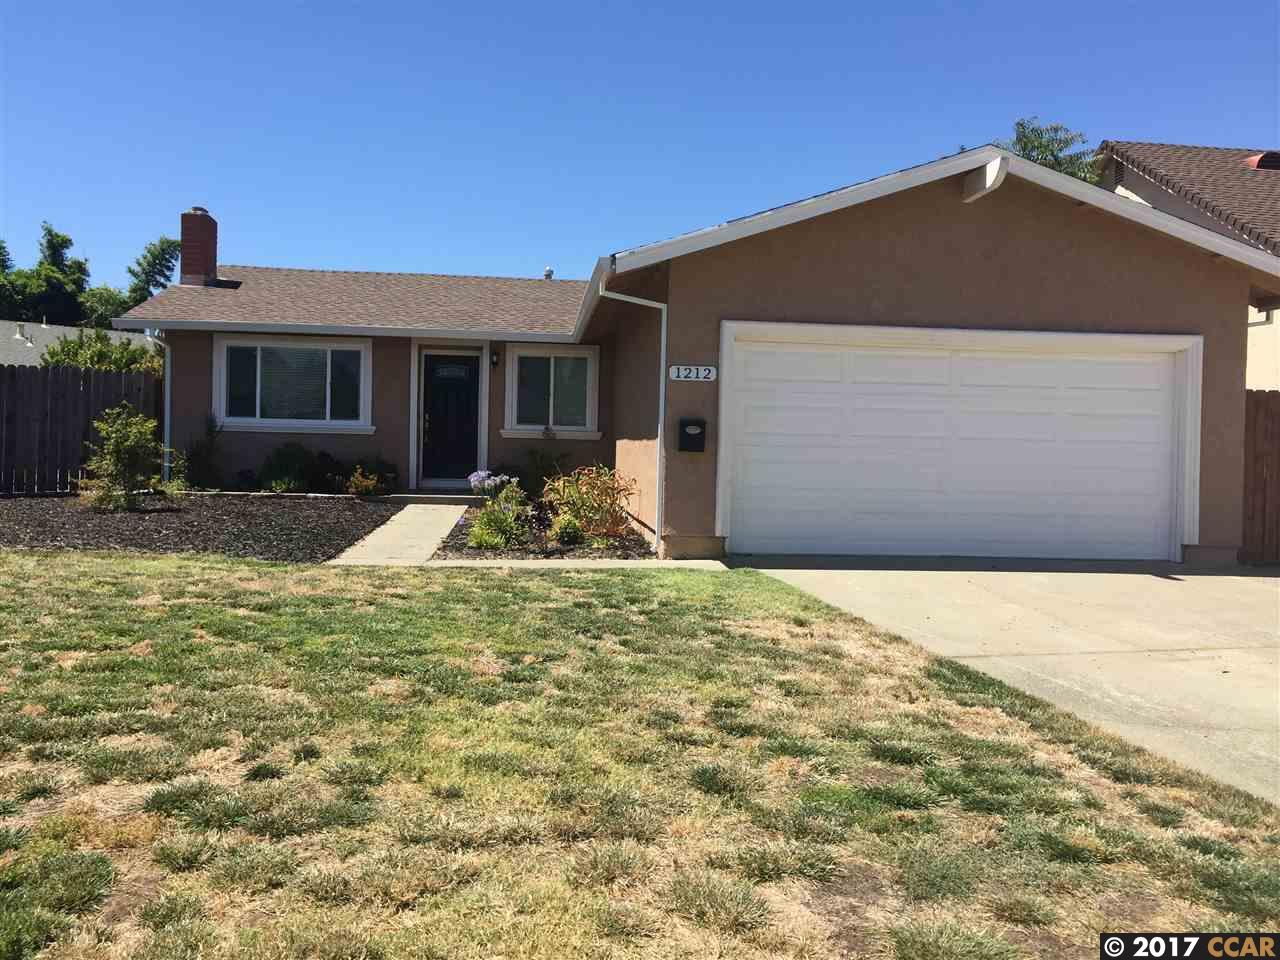 Casa Unifamiliar por un Venta en 1212 Willet Court 1212 Willet Court Fairfield, California 94533 Estados Unidos